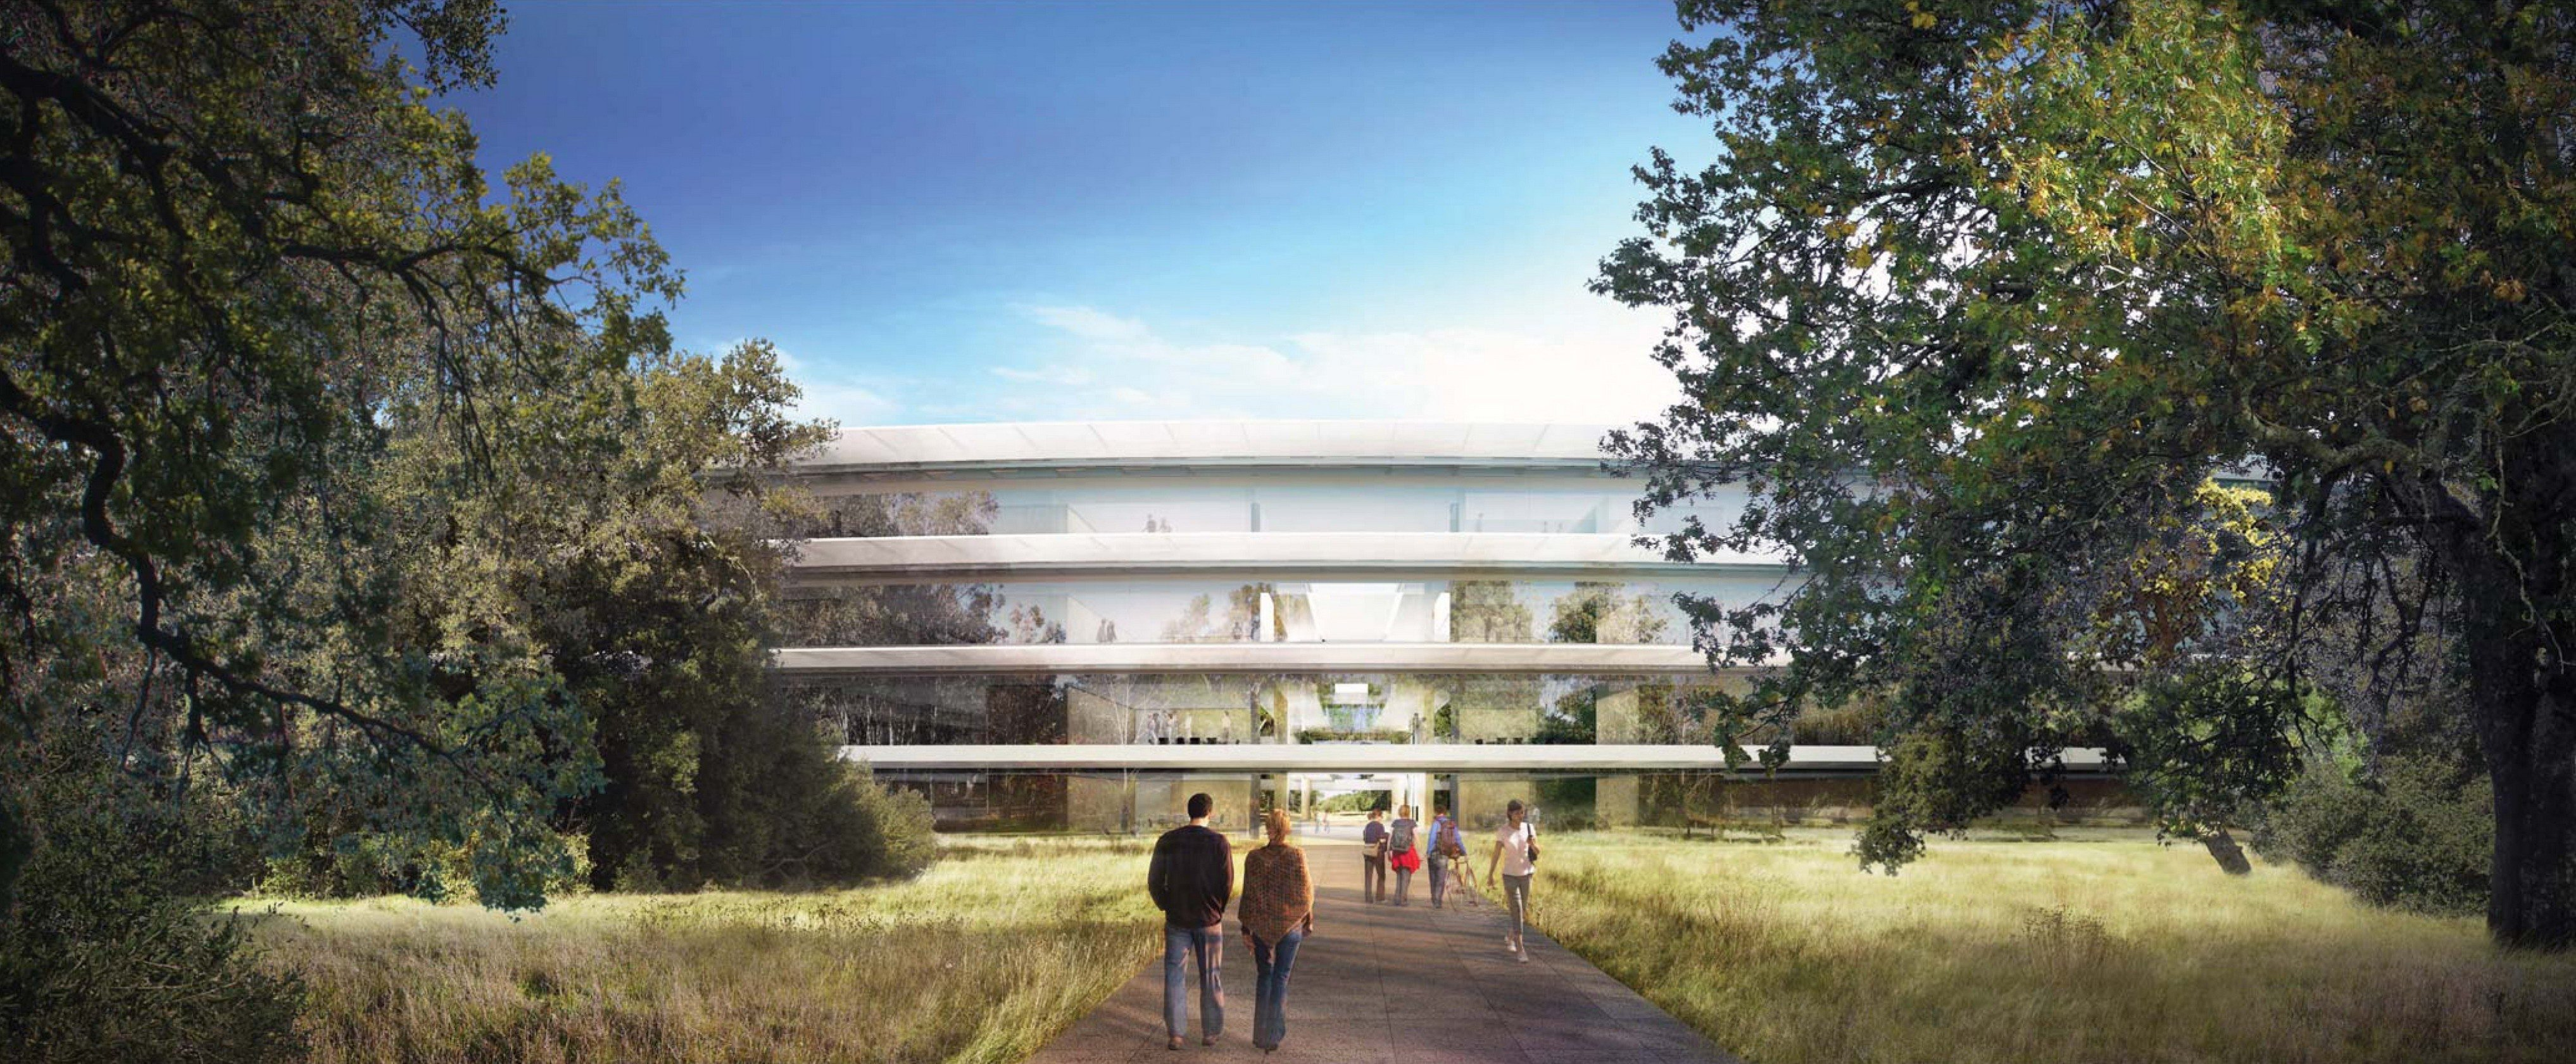 Apple Campus 2 project   Foster + Partners